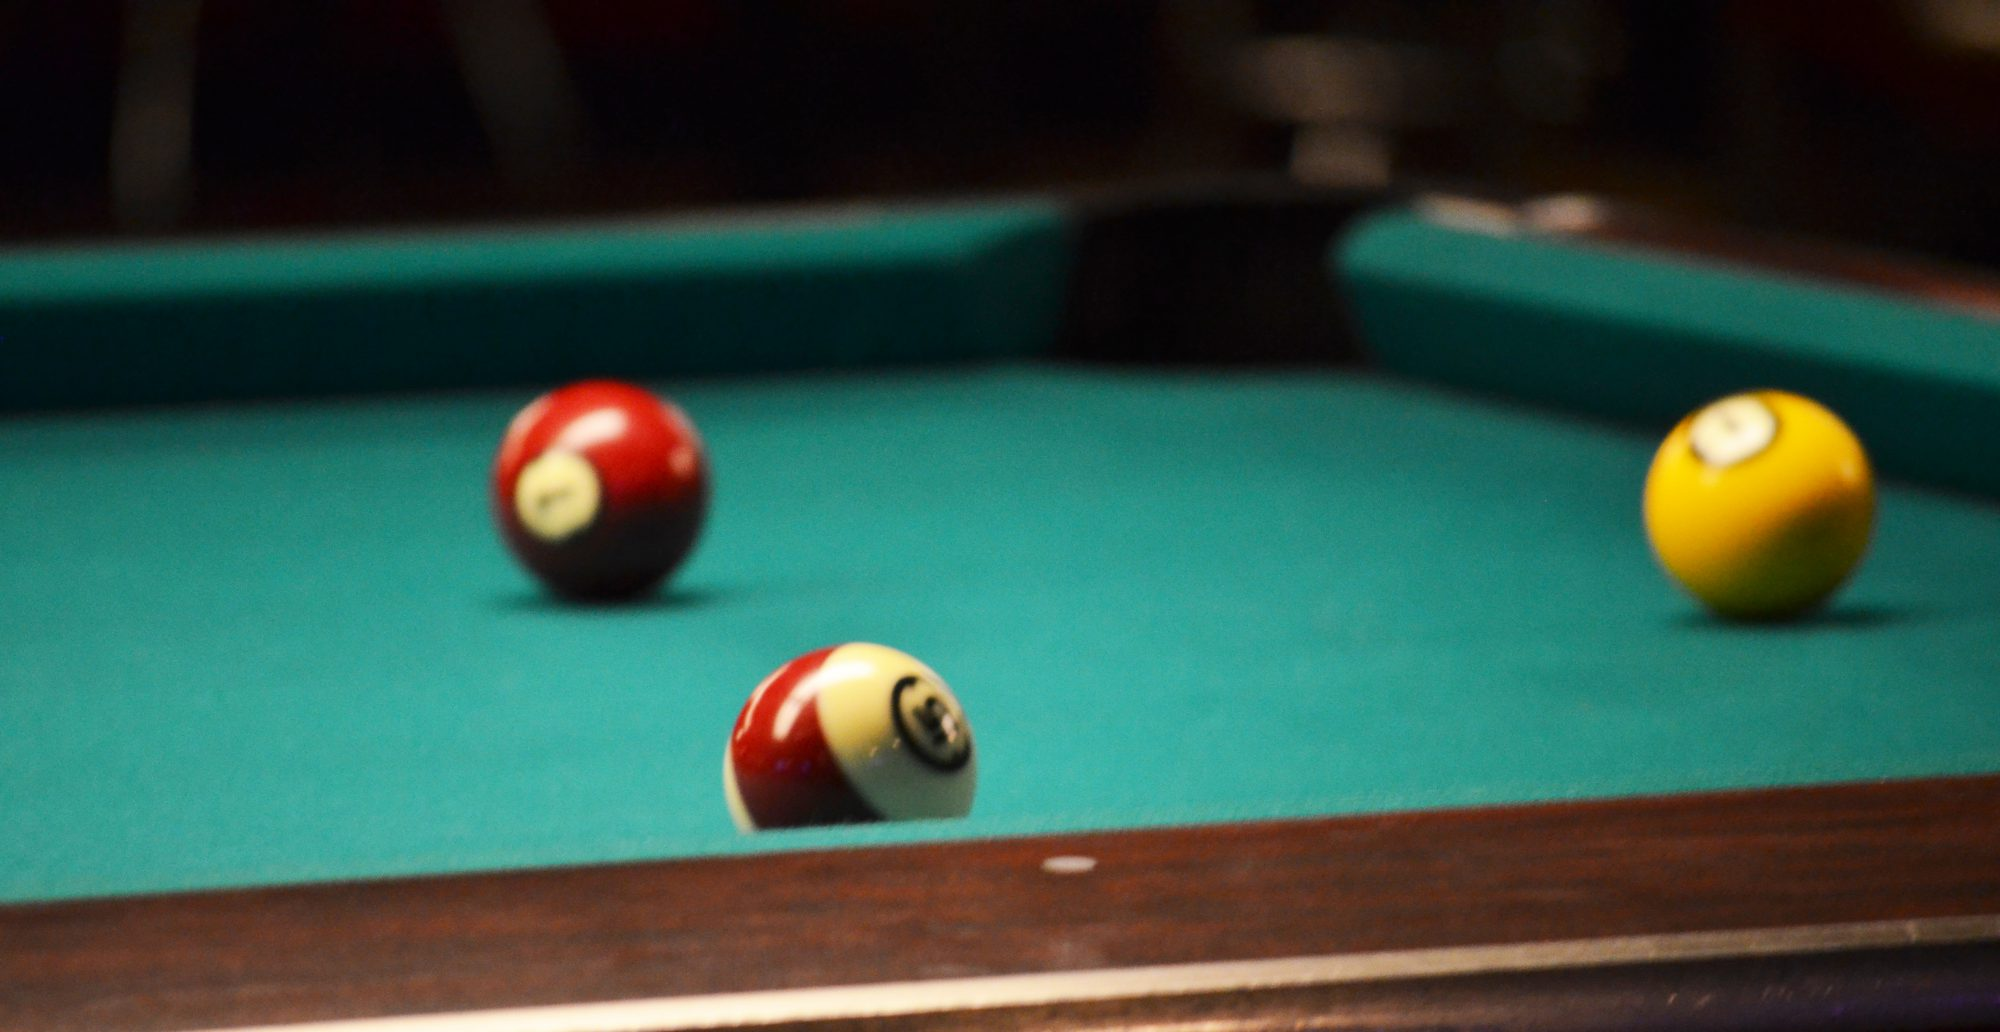 High House Billiards: Open 1pm to 2am 365 days a year